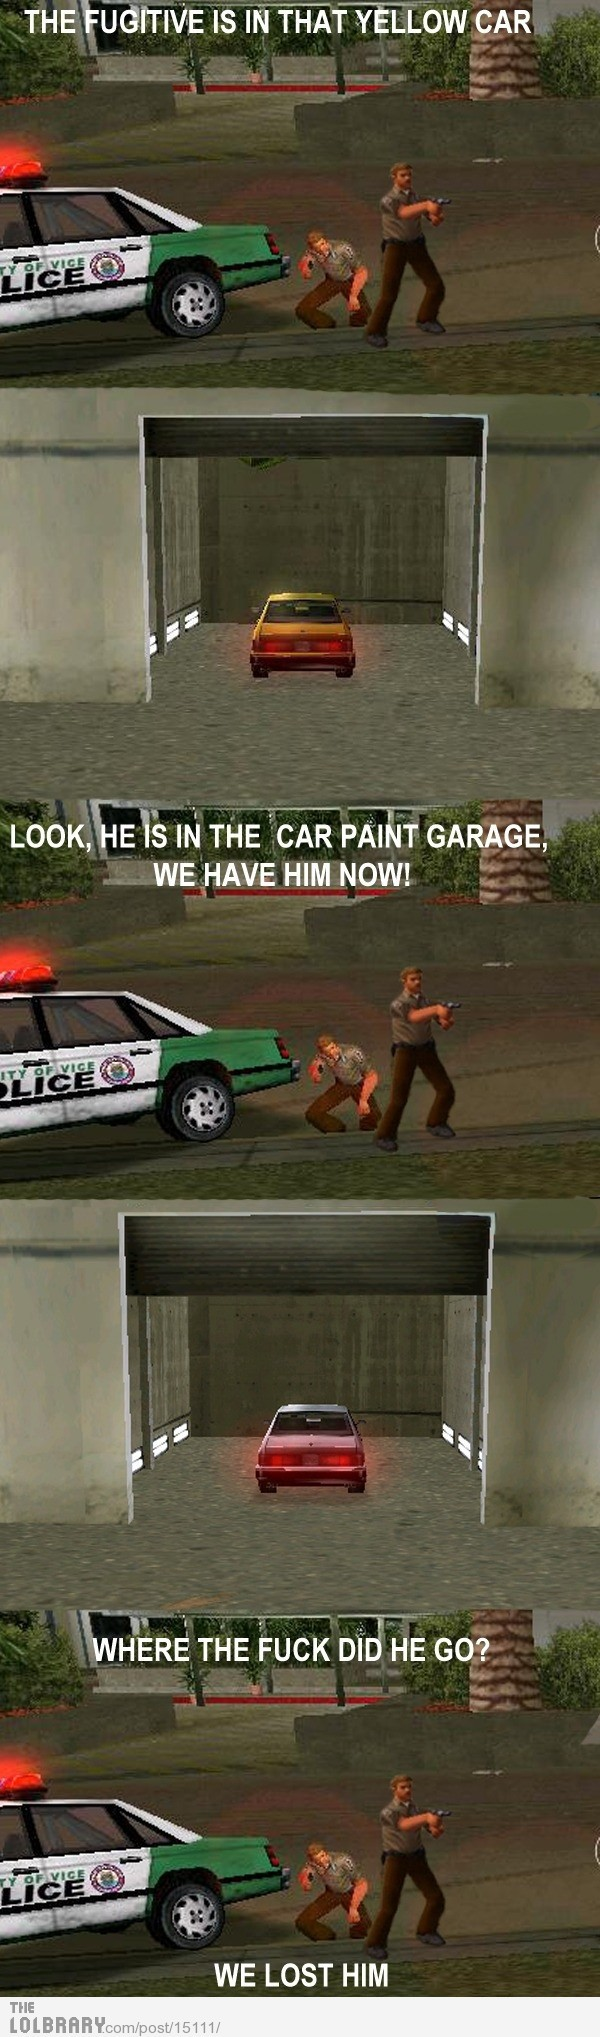 GTA Vice City logic